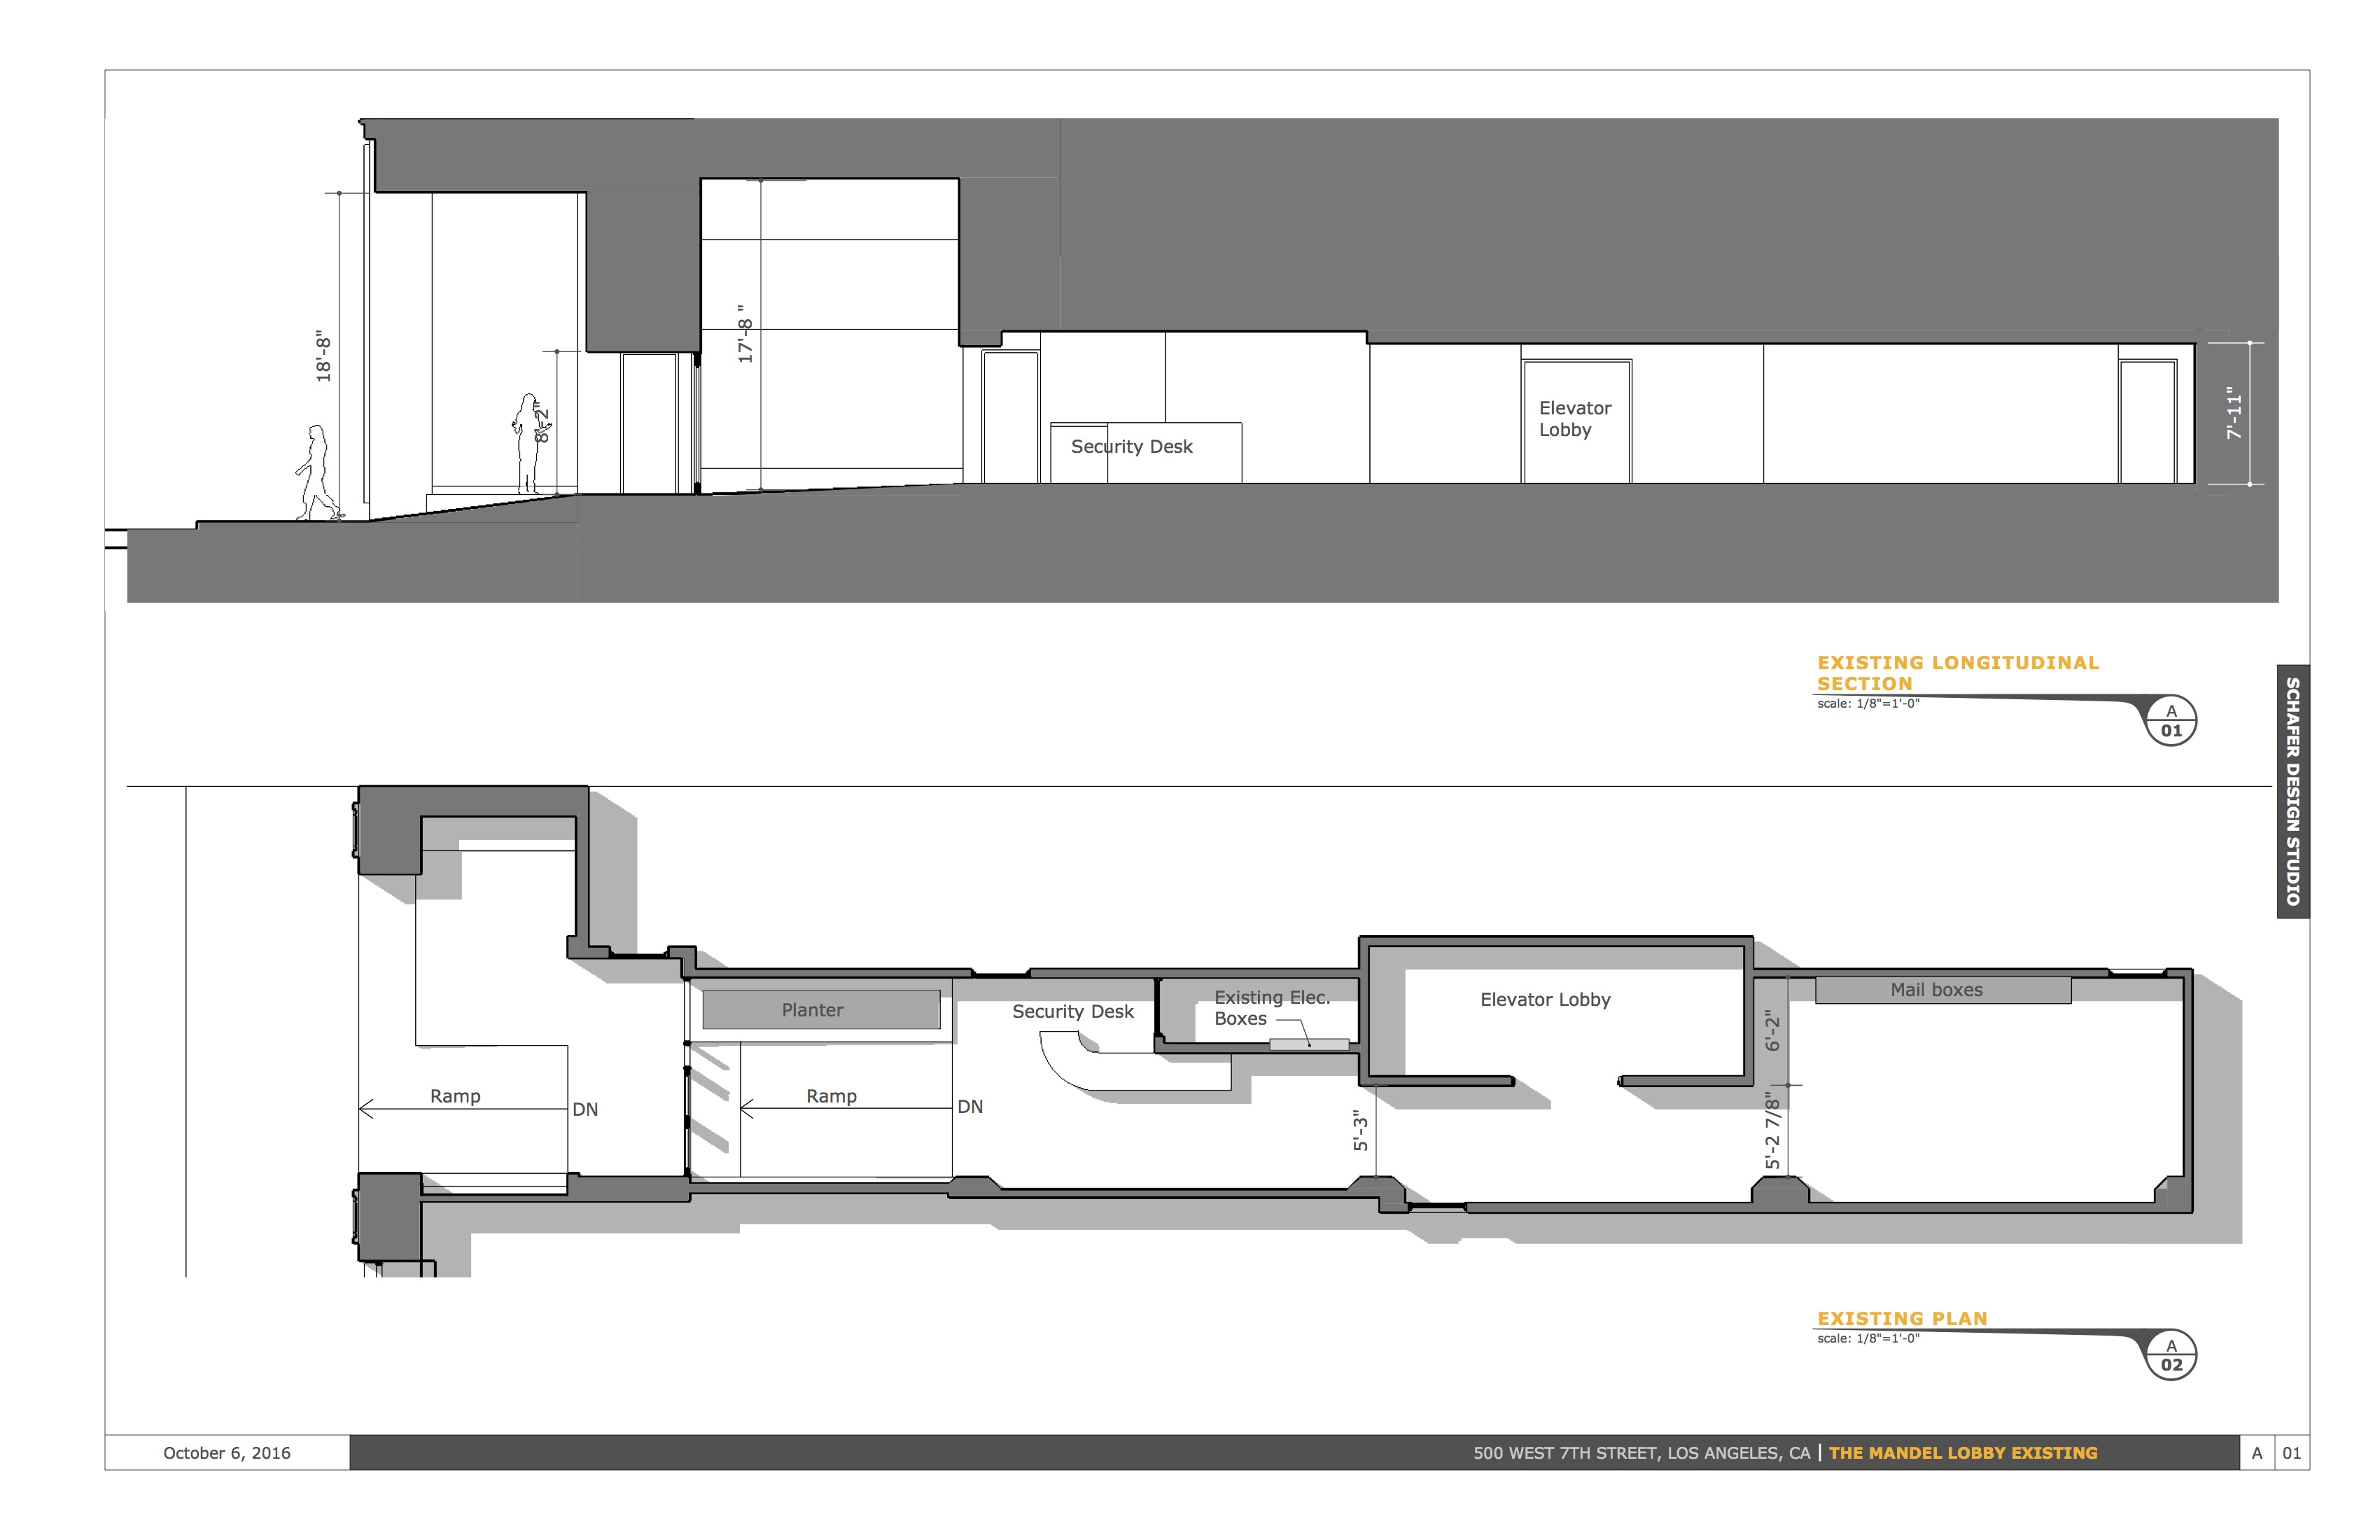 existing plan & section